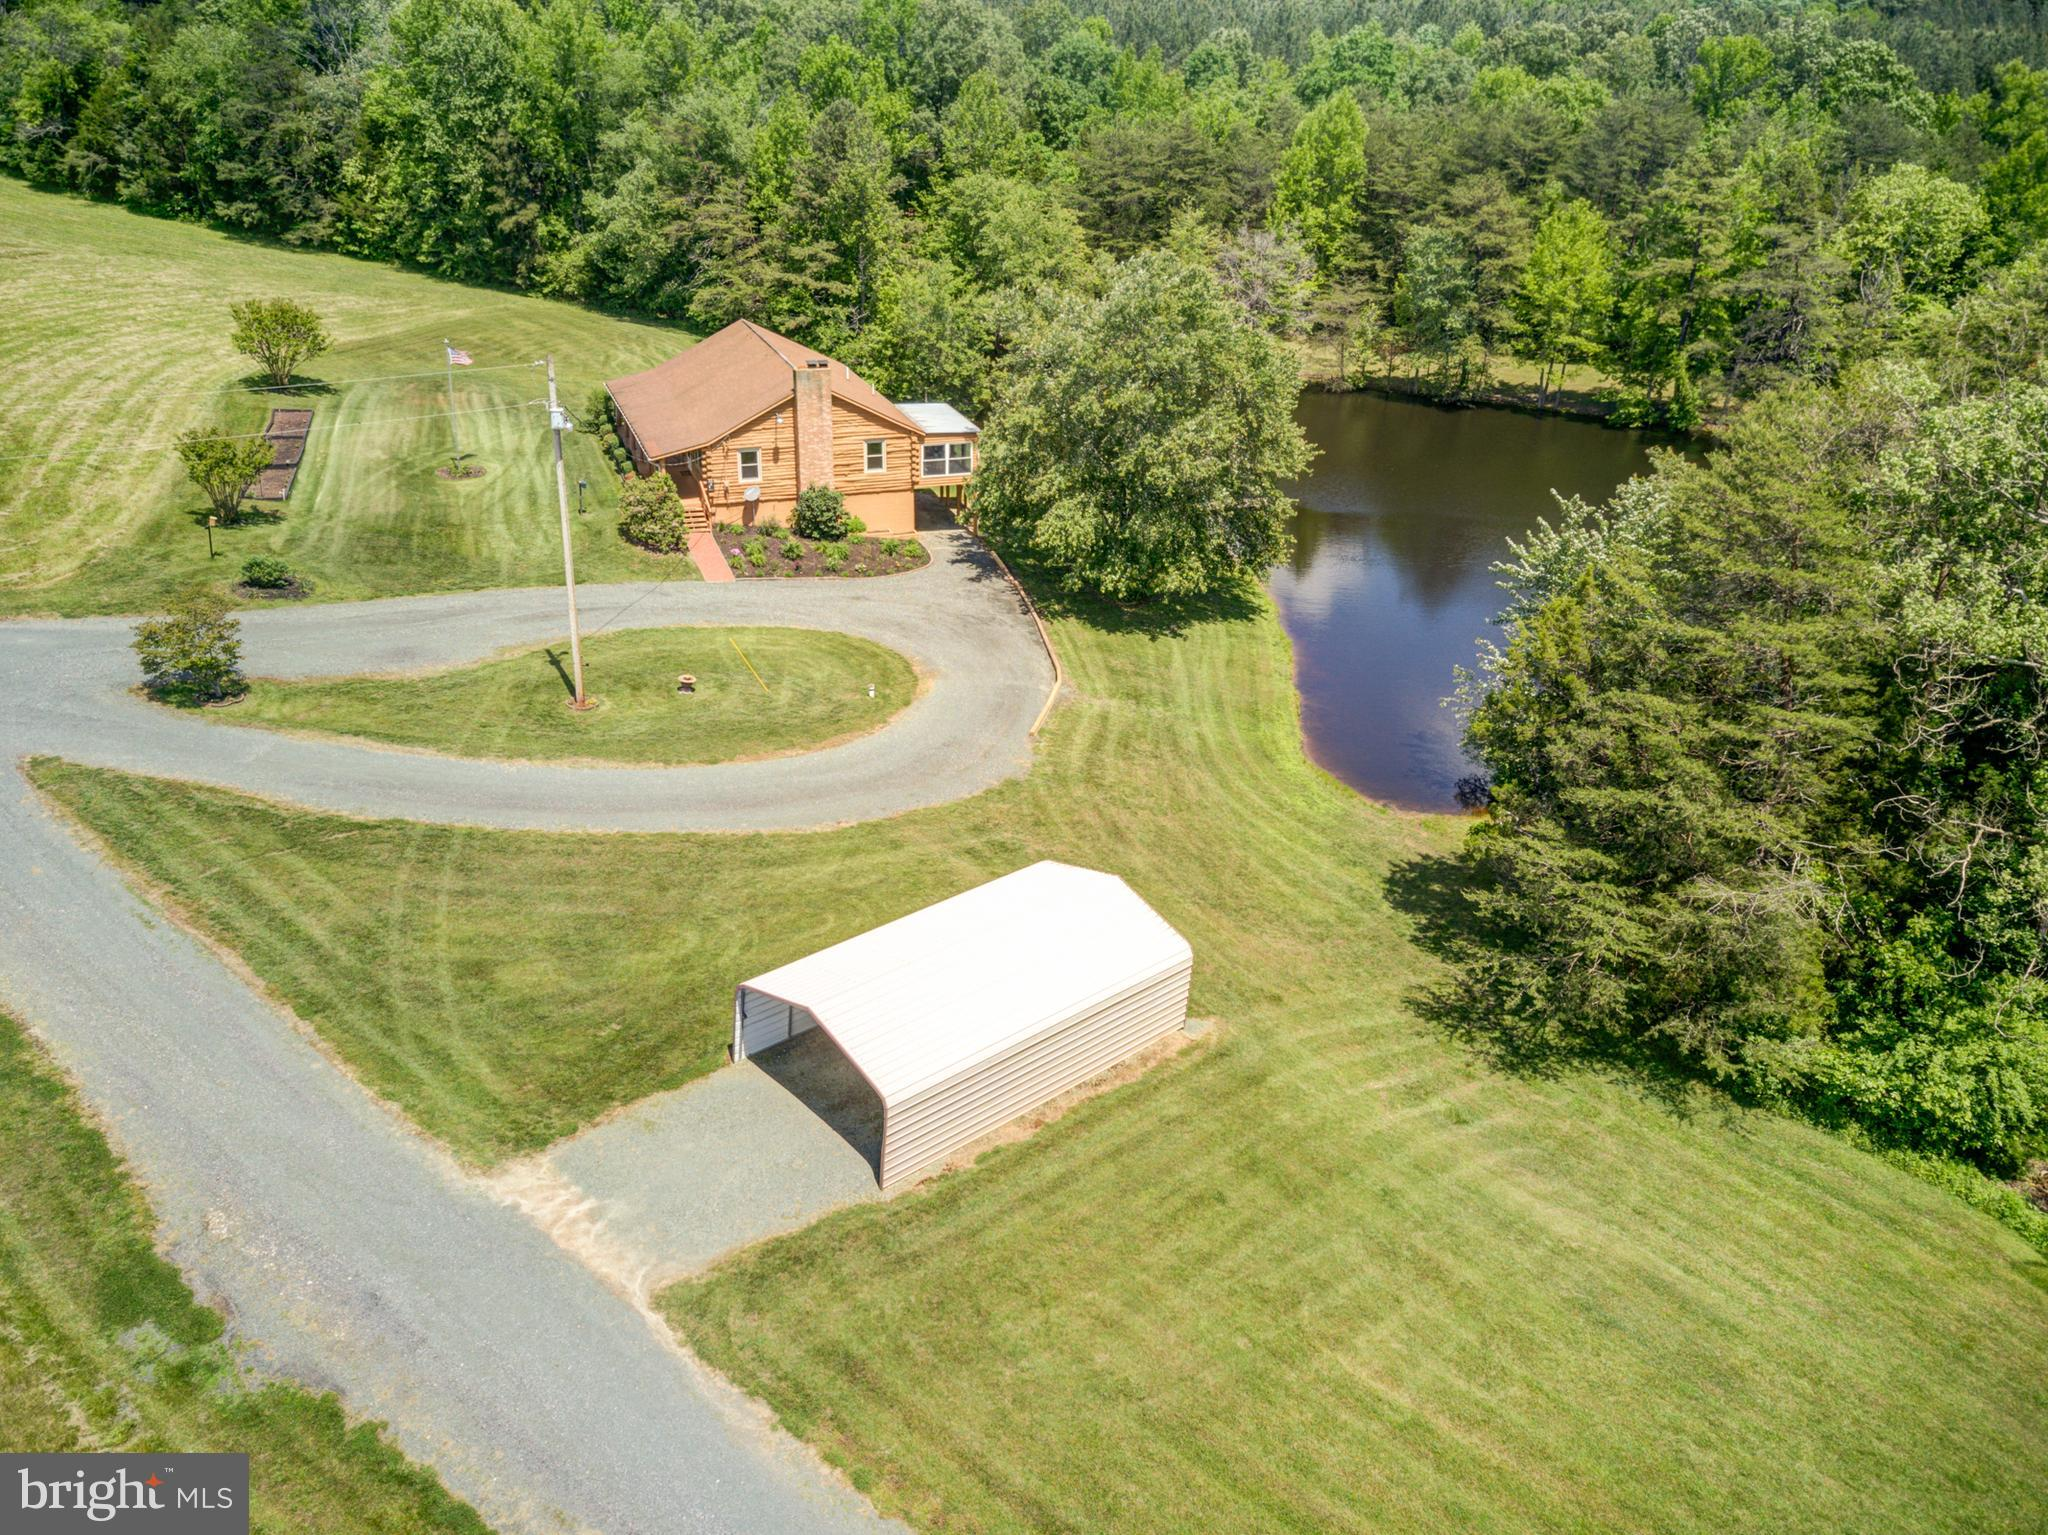 2834 VENABLE ROAD, KENTS STORE, VA 23084